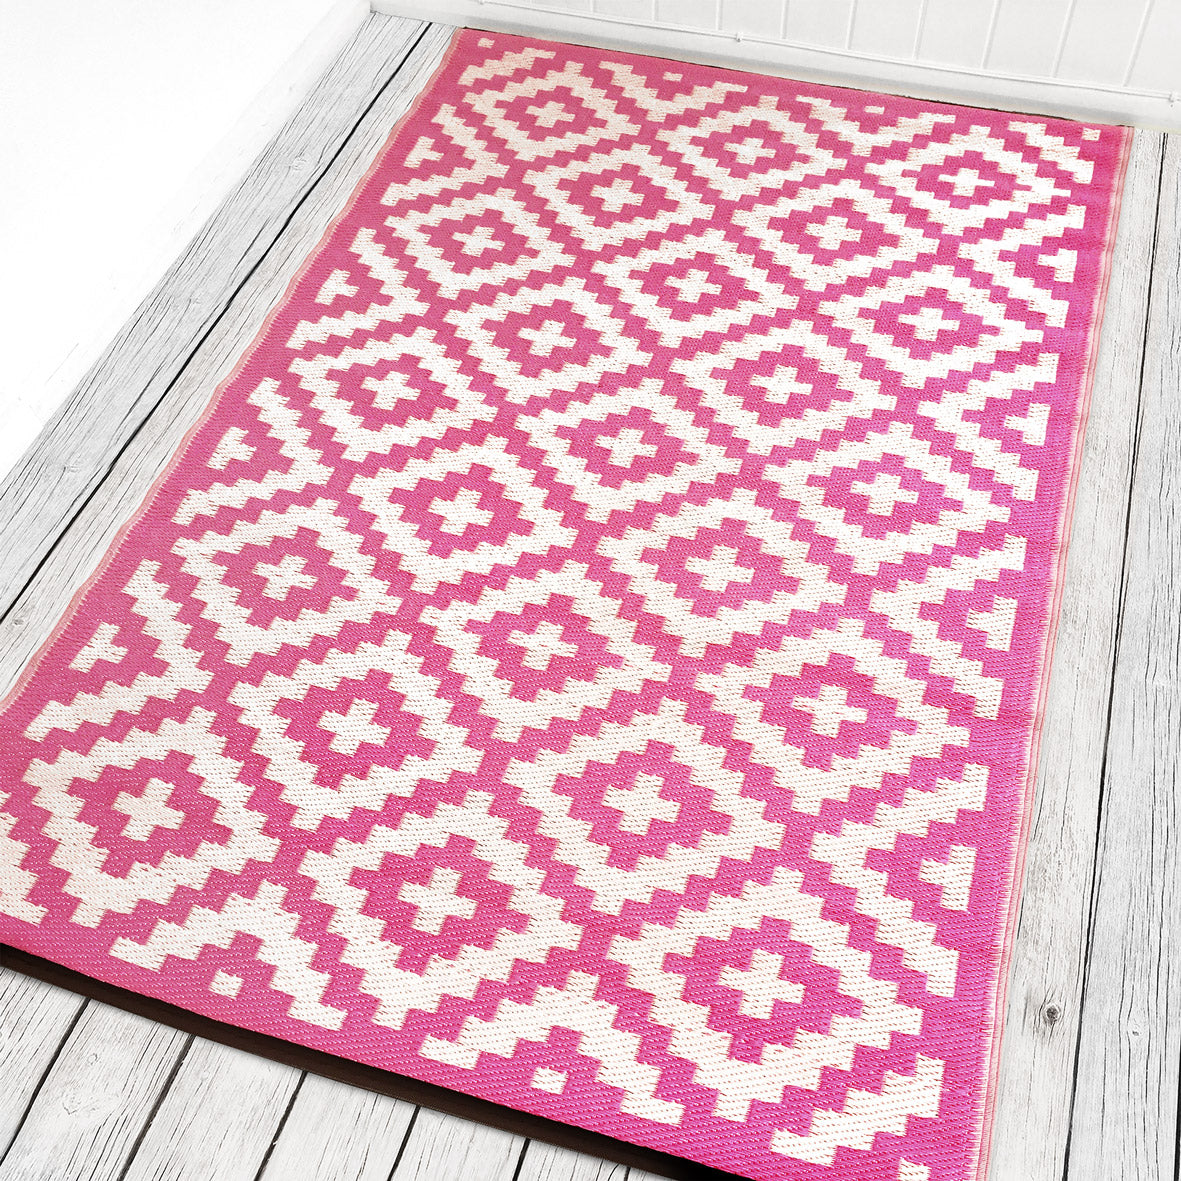 Nirvana Outdoor Recycled Plastic Rug (Pink/White)